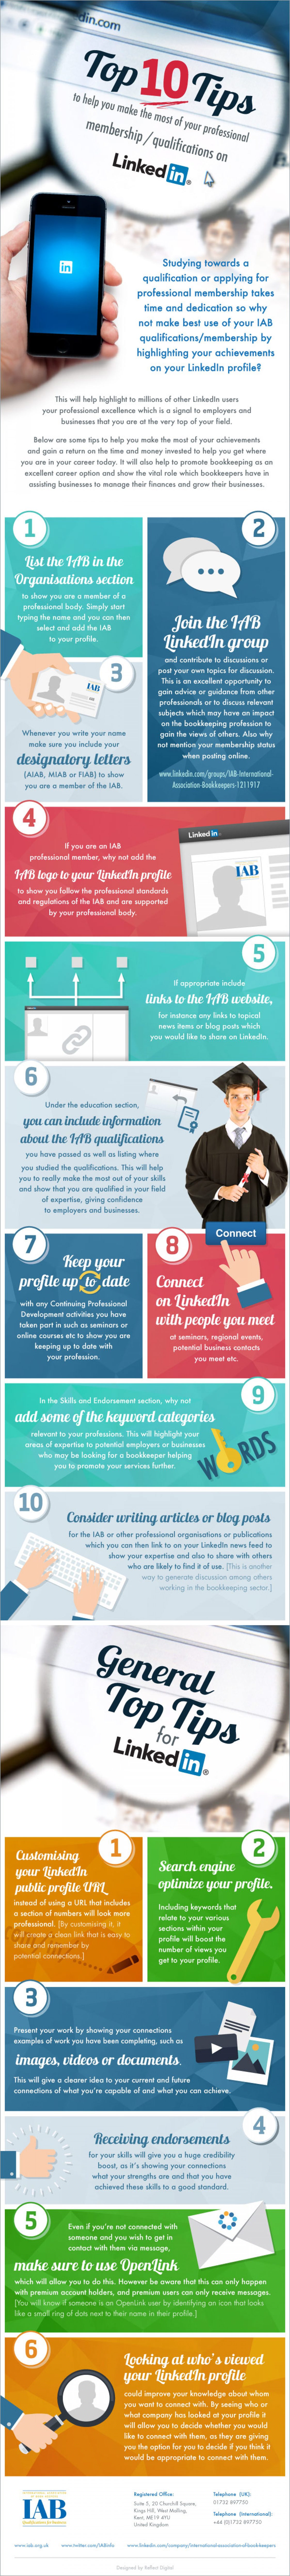 Top 10 Tips to help you make the most of your professional membership/qualifications on LinkedIn Infographic